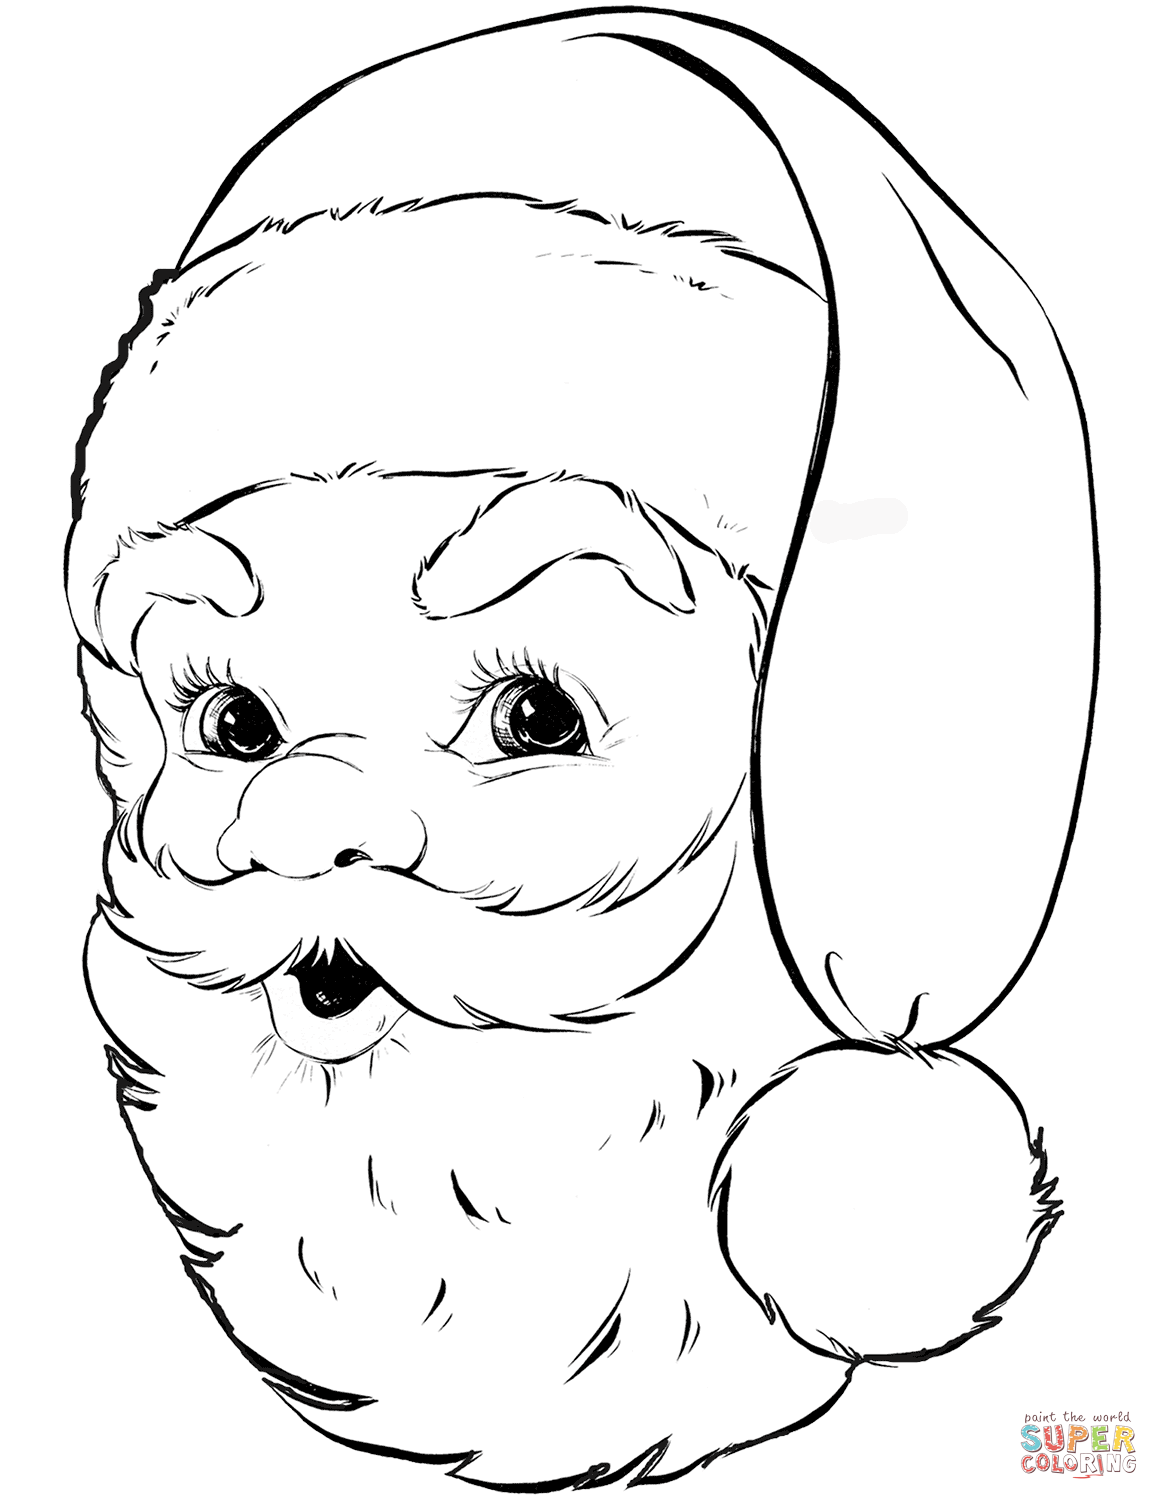 Santa Claus Christmas Coloring Pages For Kids With Free